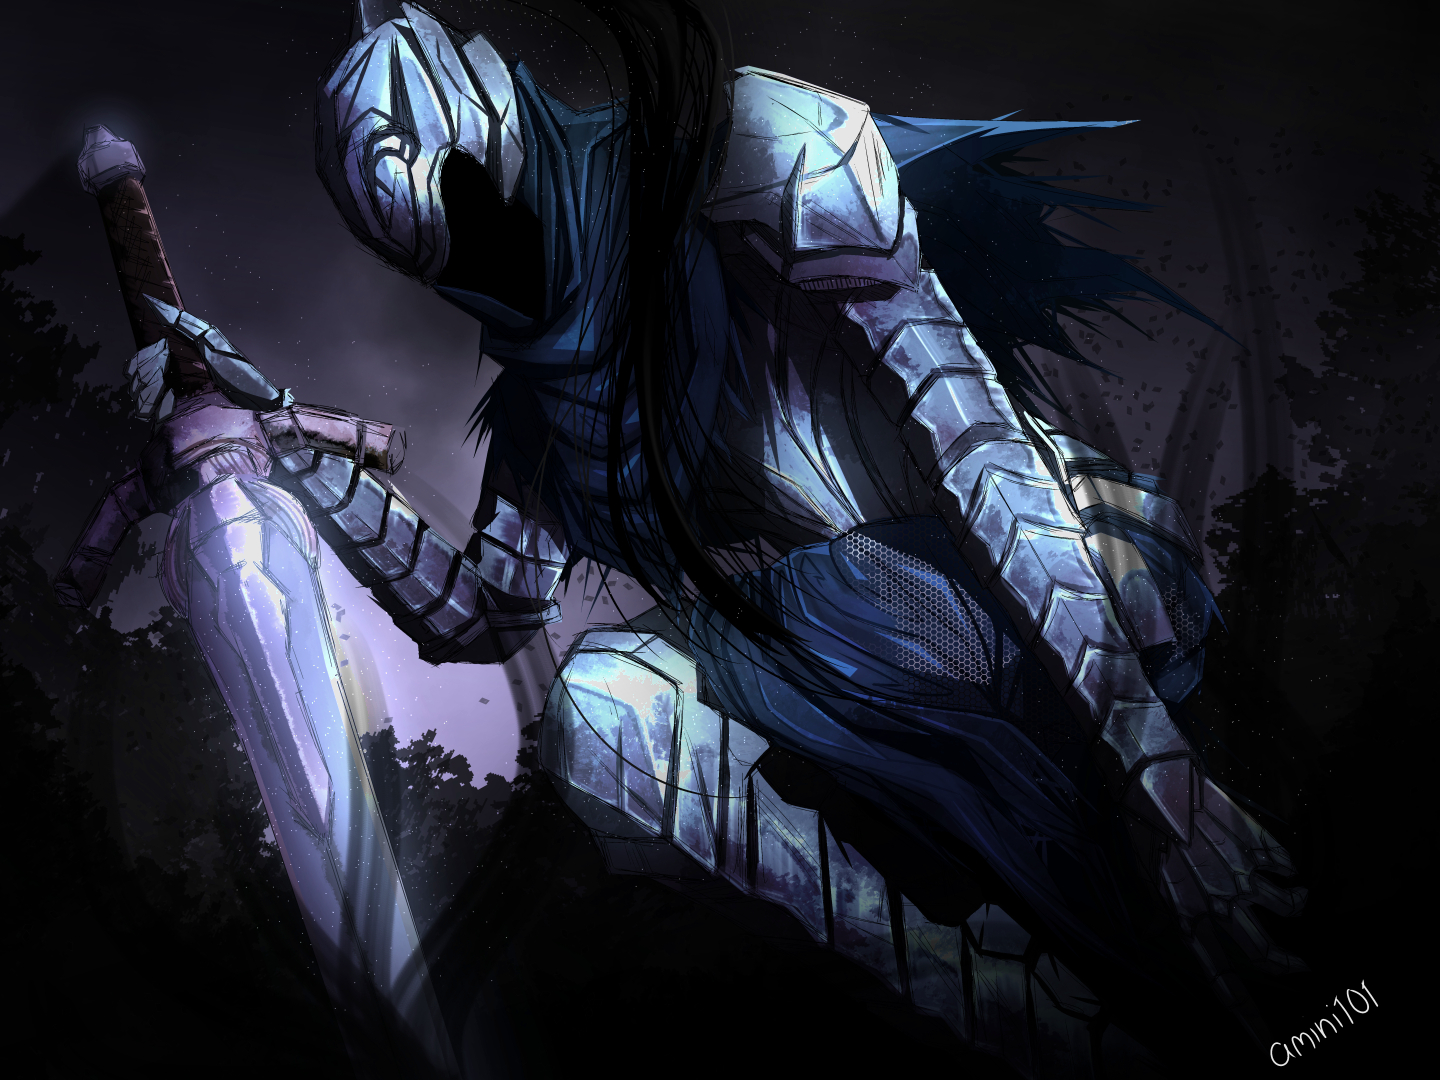 Artorias of the abyss by amini101